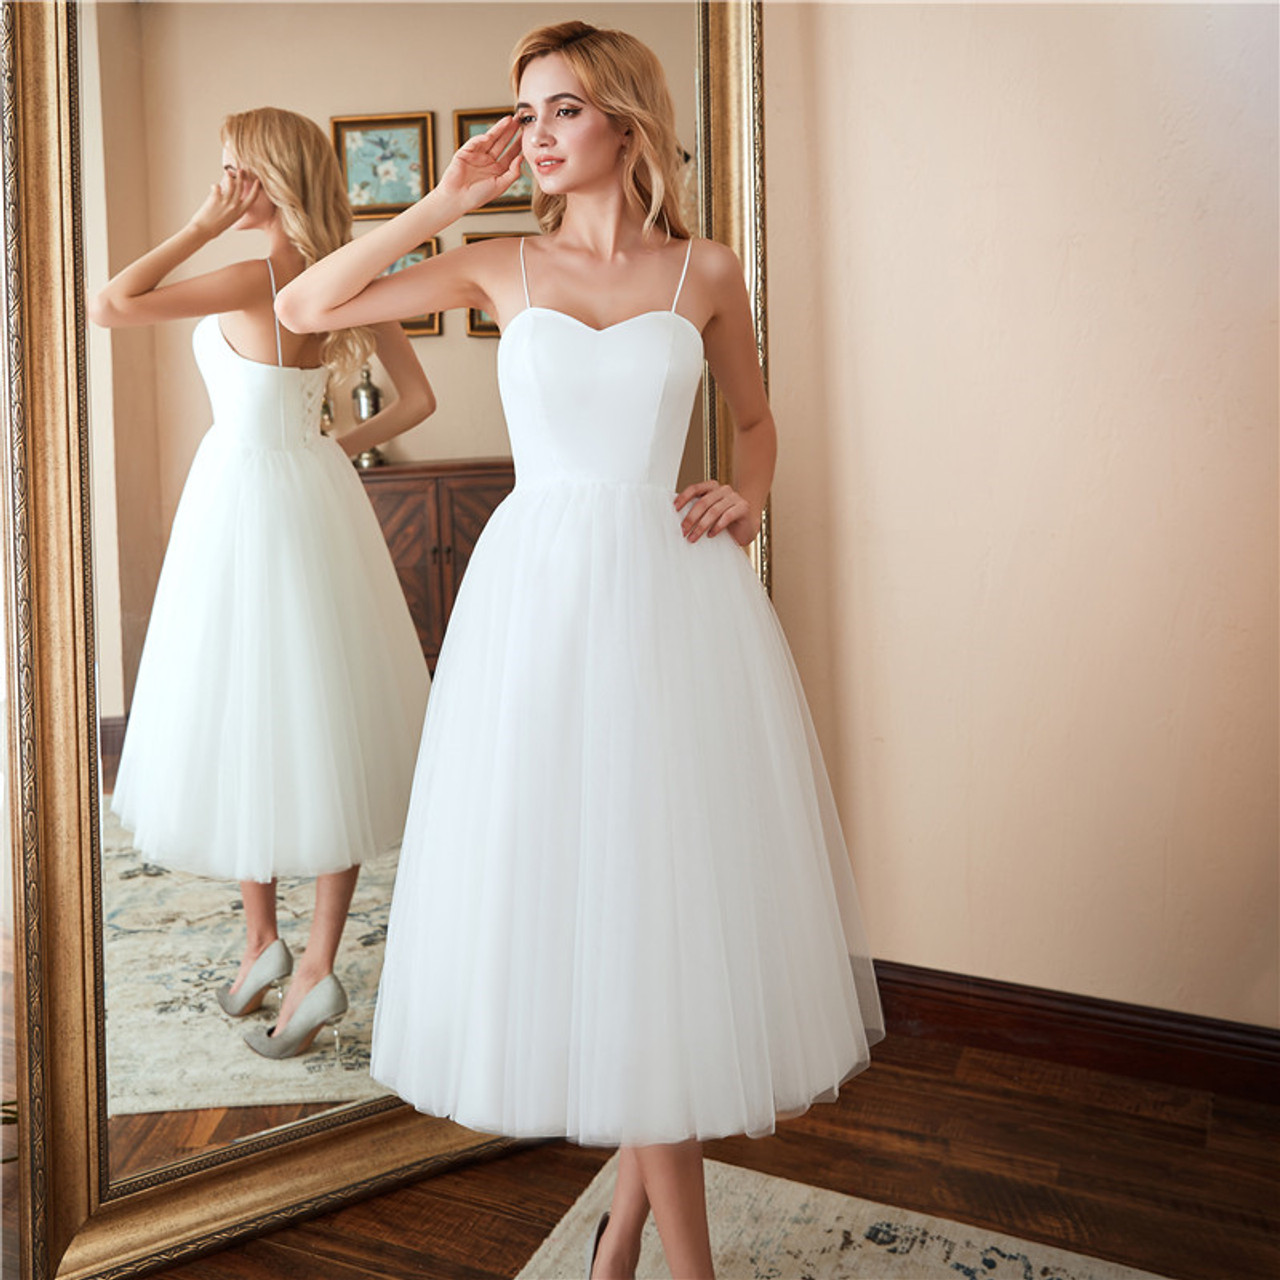 Short Beach Wedding Dresses New Vestido Noiva Praia Simple New White Real Photo Backless A Line Prom Party Bridal Gowns Onshopdeals Com,Long Sleeve Maxi Dresses For Weddings